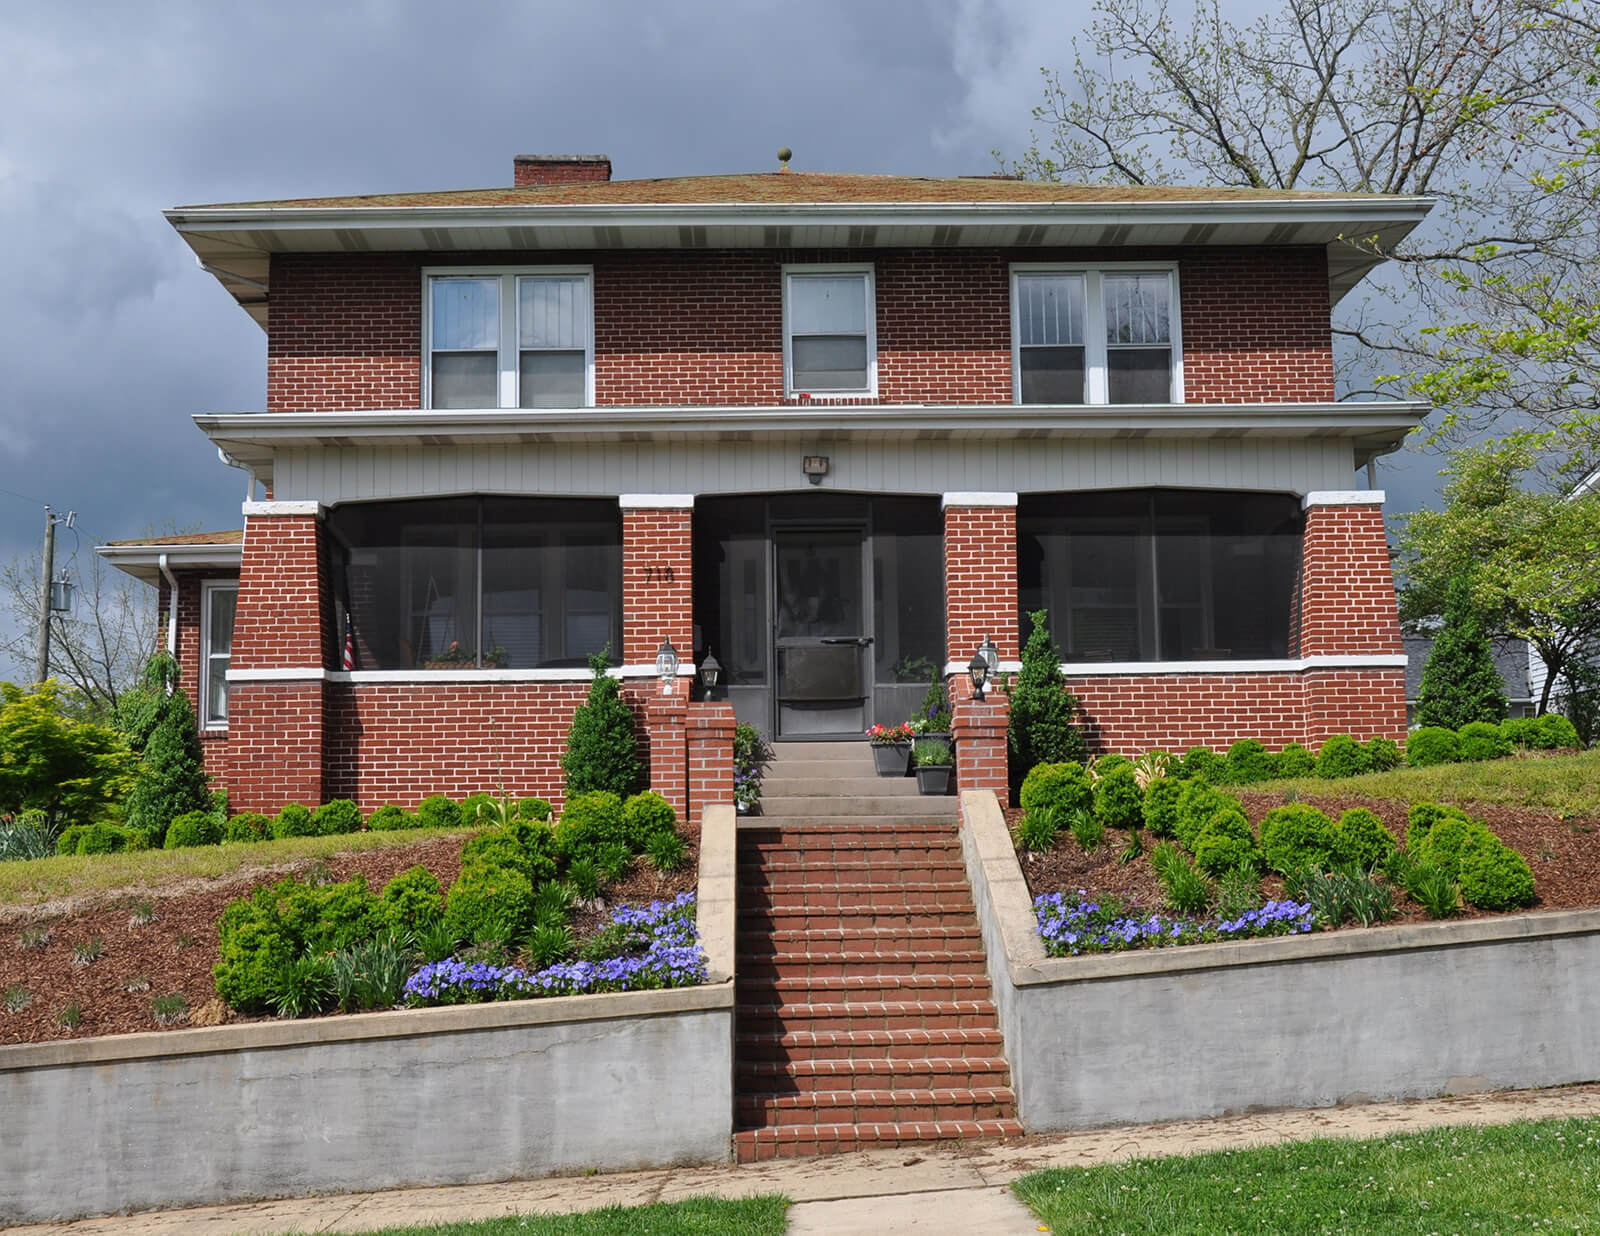 Euclid Avenue Historic District – (Amy Hopper, Bristol Historical Association)